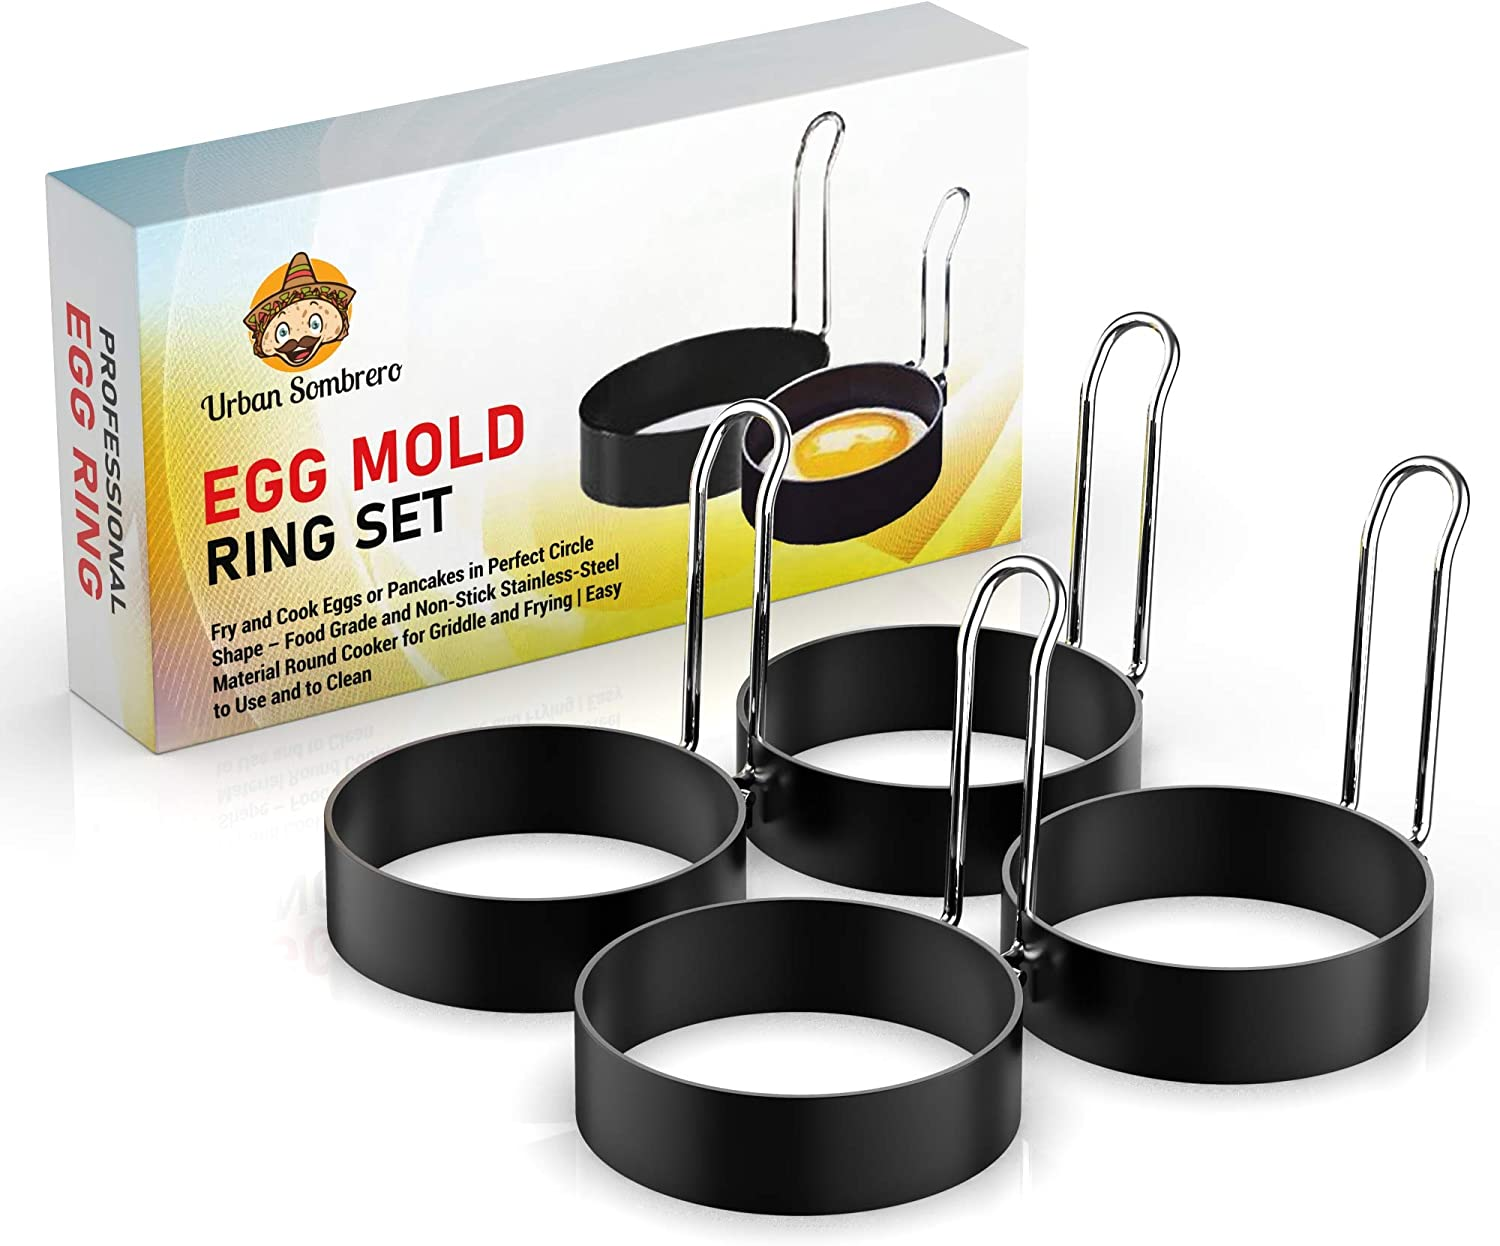 Egg Mold Ring Set (4 Pack) – Fry and Cook Eggs or Pancakes in Perfect Circle Shape – Food Grade, Non-Stick Stainless-Steel Material Round Cooker for Griddle and Frying Pan   Easy to Use and to Clean